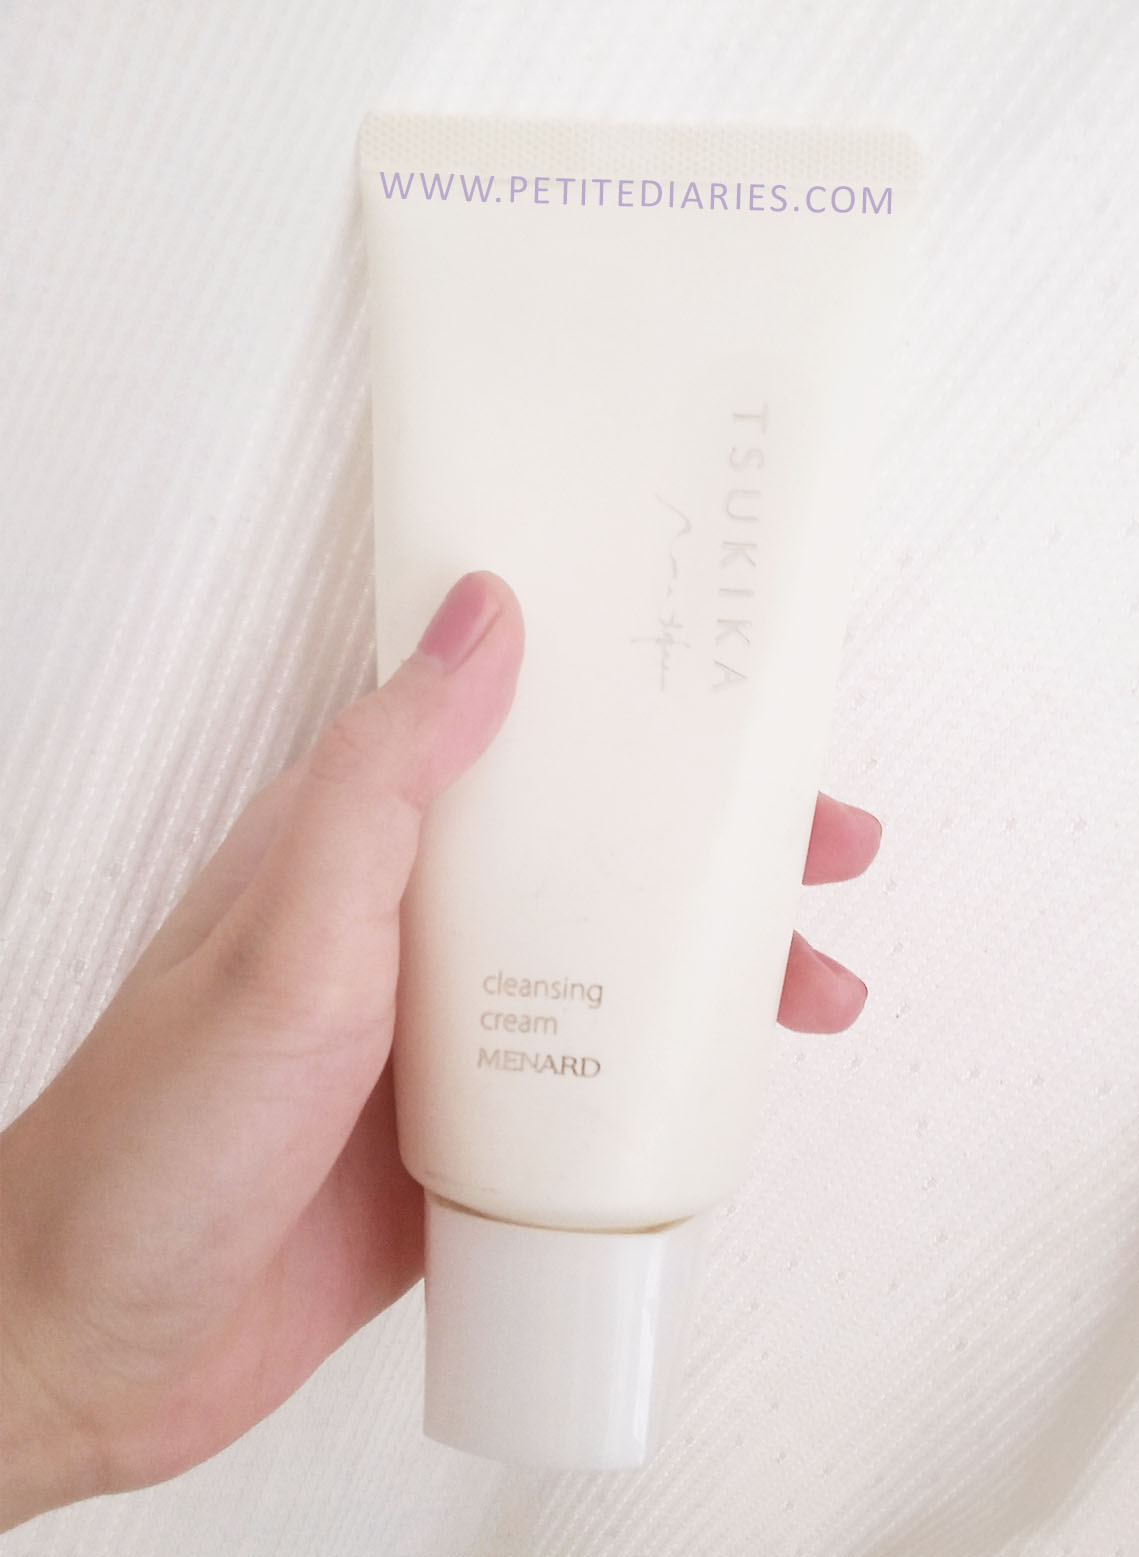 menard skincare tsukika cleansing cream review